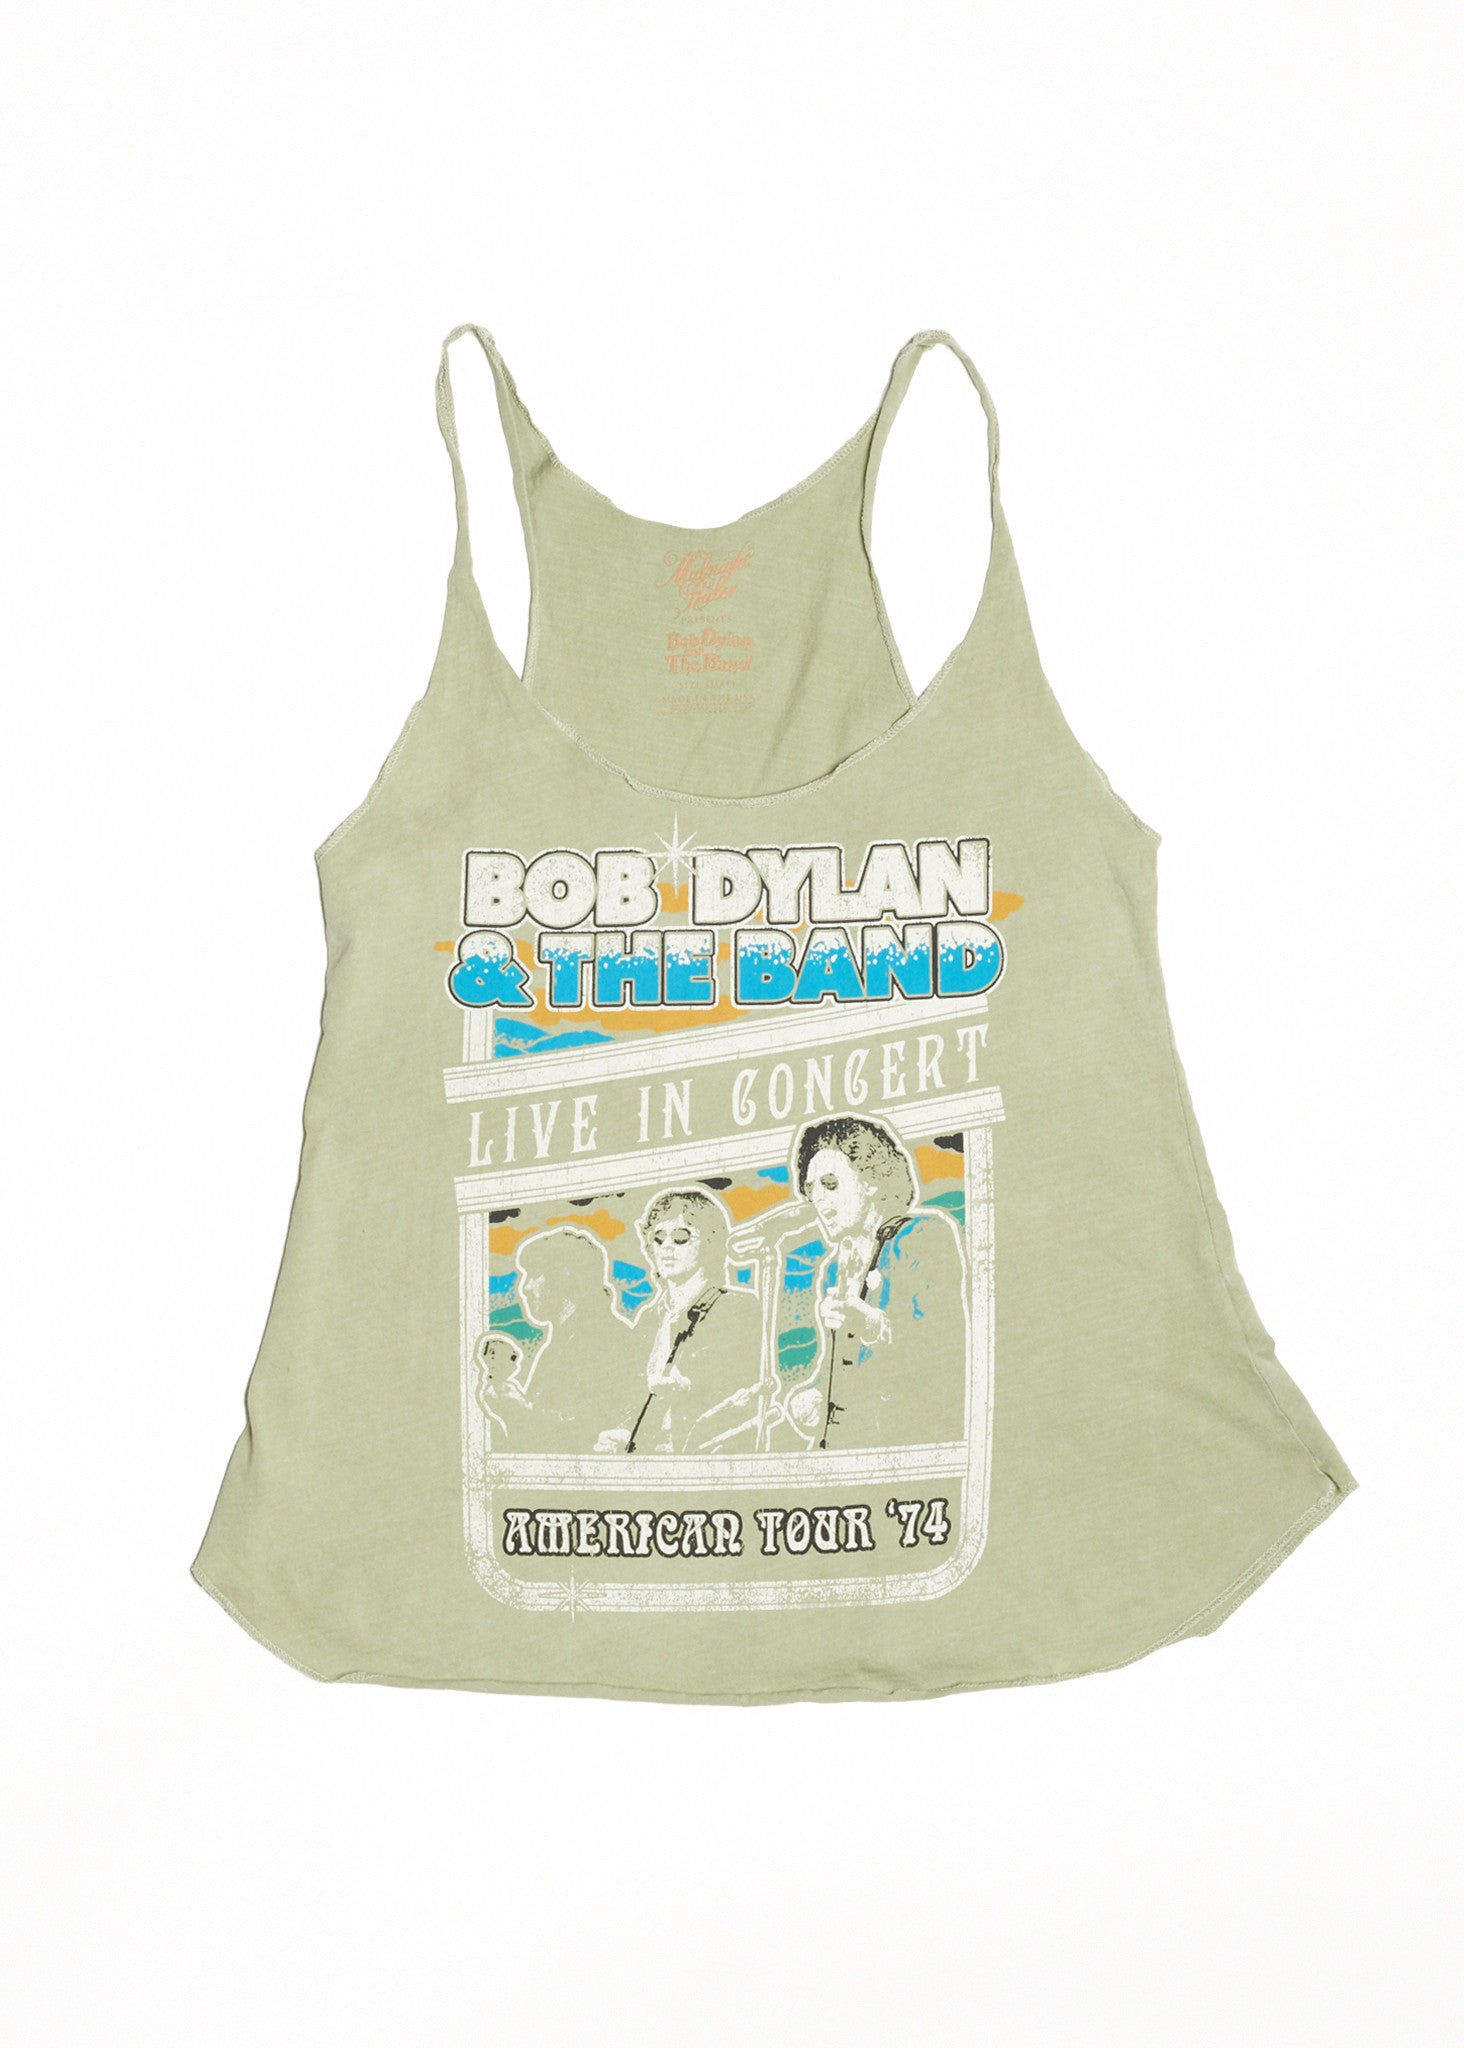 Bob Dylan and The Band Live in Concert Racerback Tank - Sage - Women's Tee Shirt - Midnight Rider